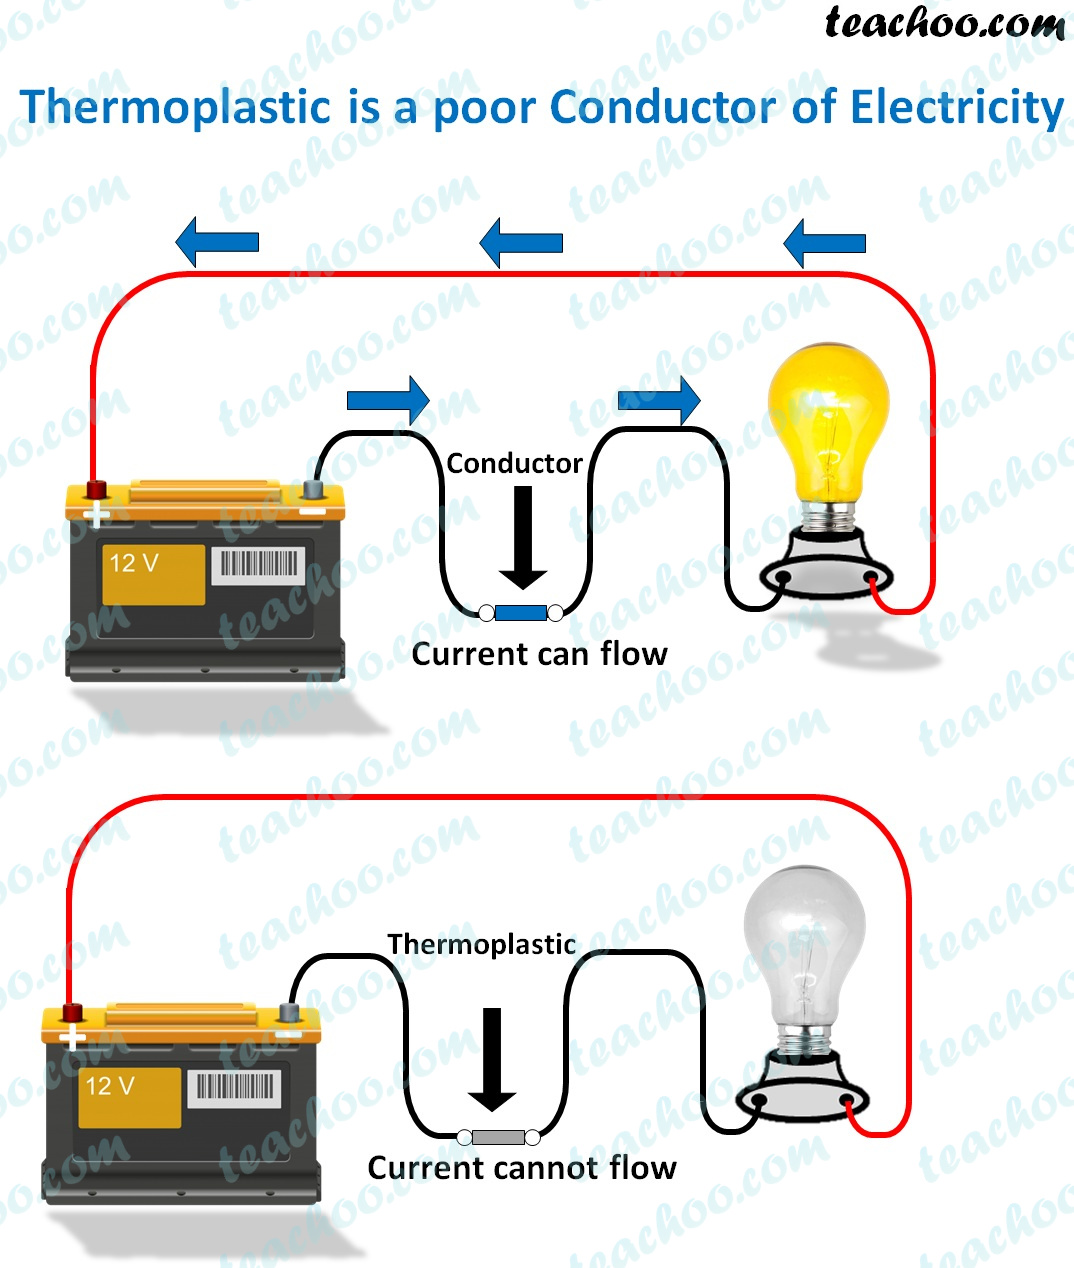 thermoplastic--poor-conductor-electricity-new (1).jpg